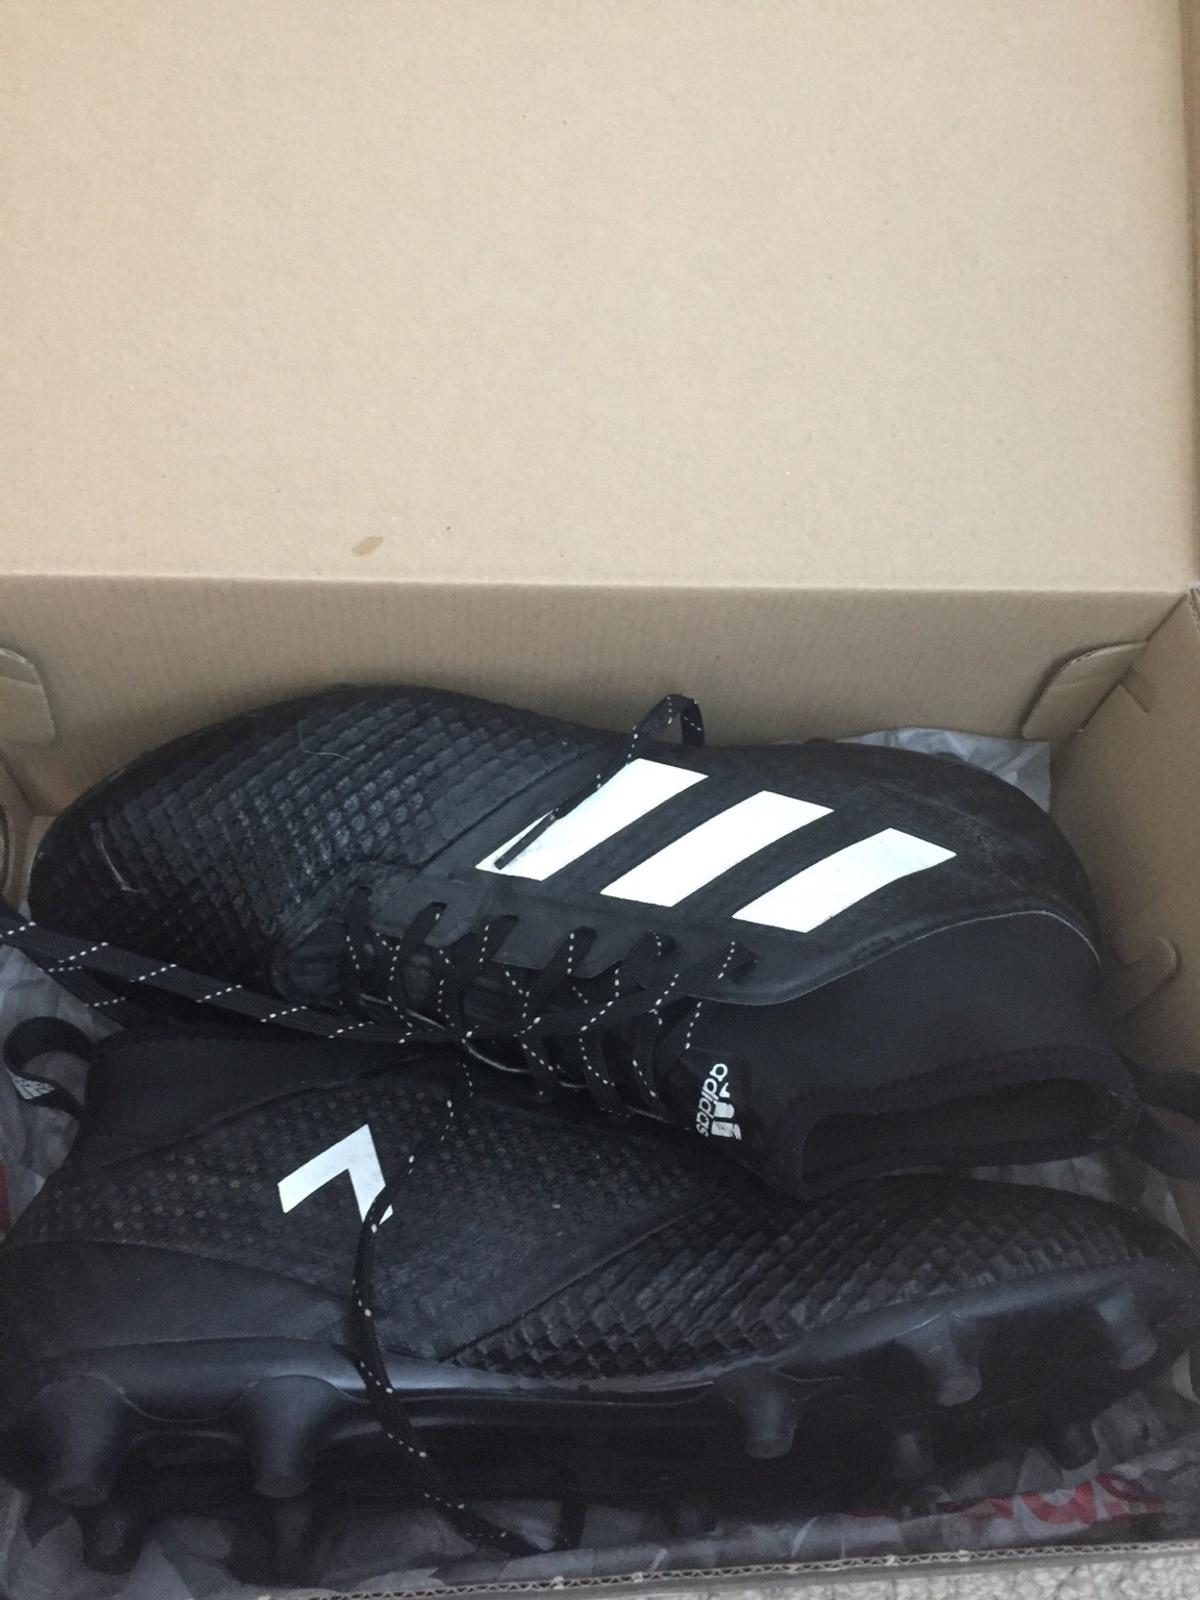 best website 5b55e adb9f Adidas Ace 17.5 football boots in WA5 Sankey for £45.00 for ...